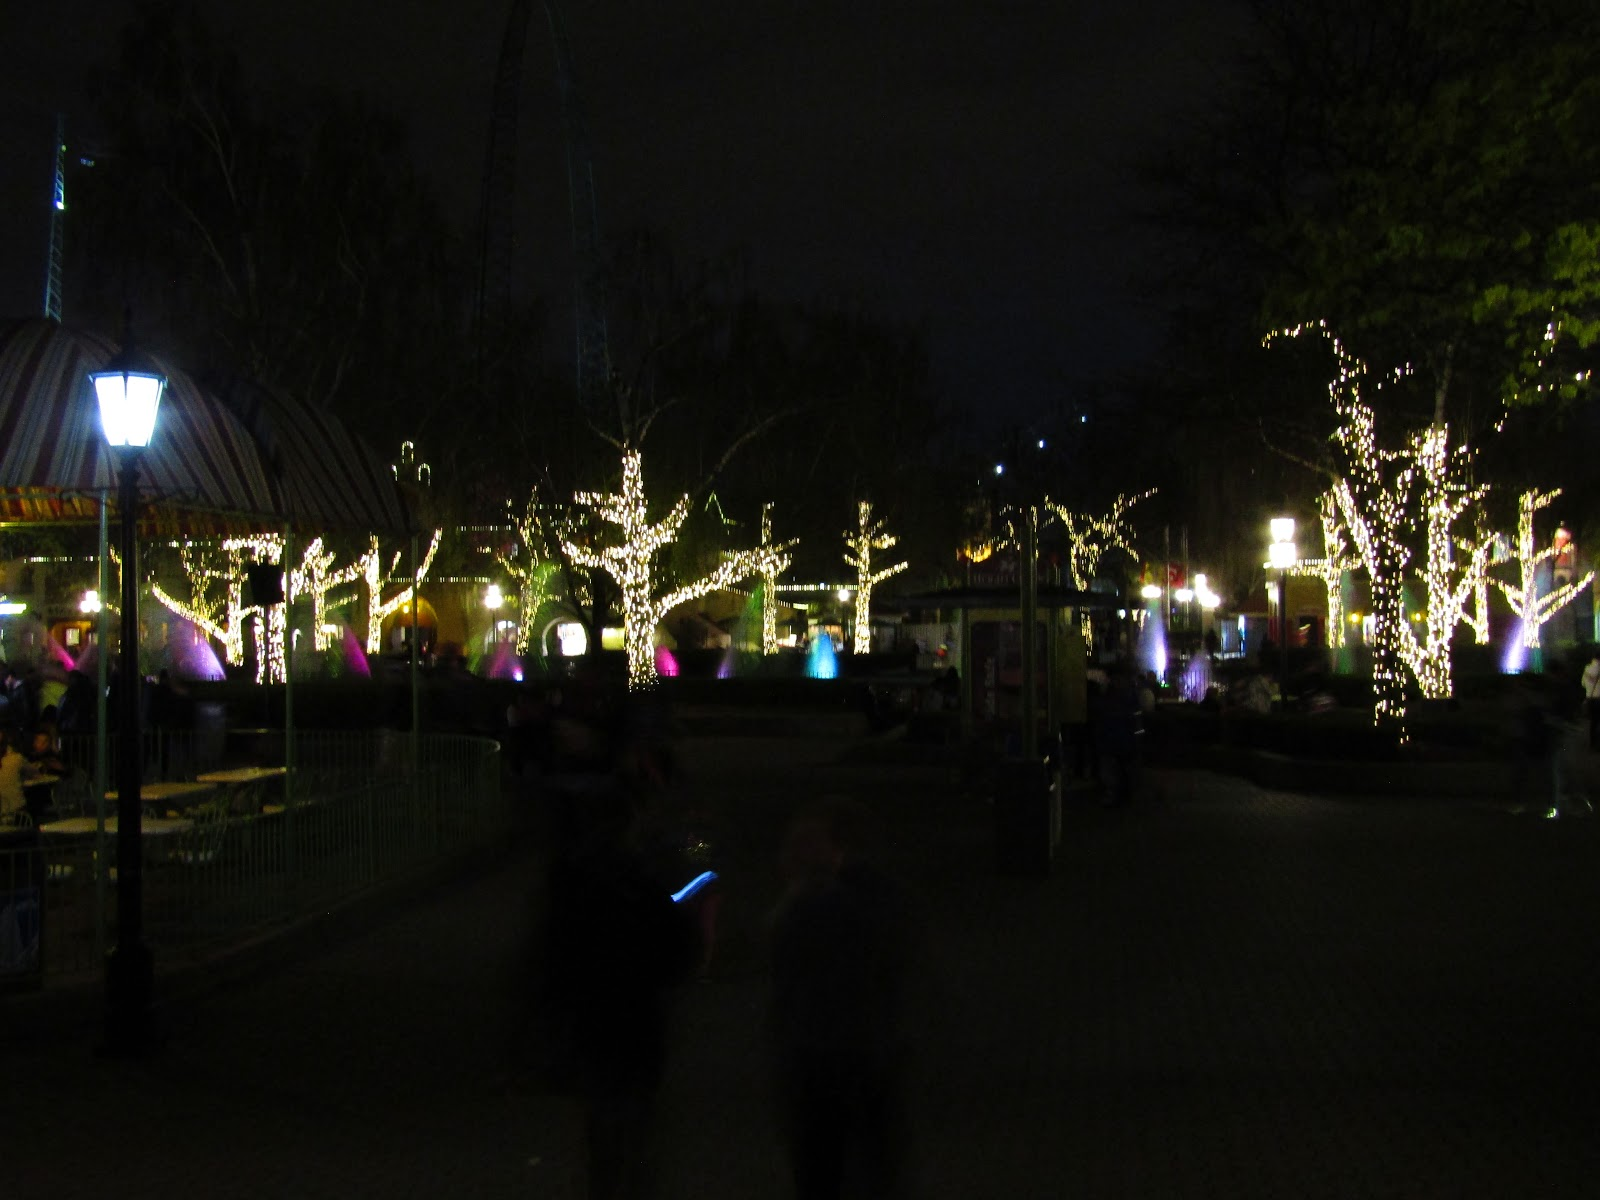 A view of International Street looking from the entrance to Medieval Faire. The trees are strung with white lights.